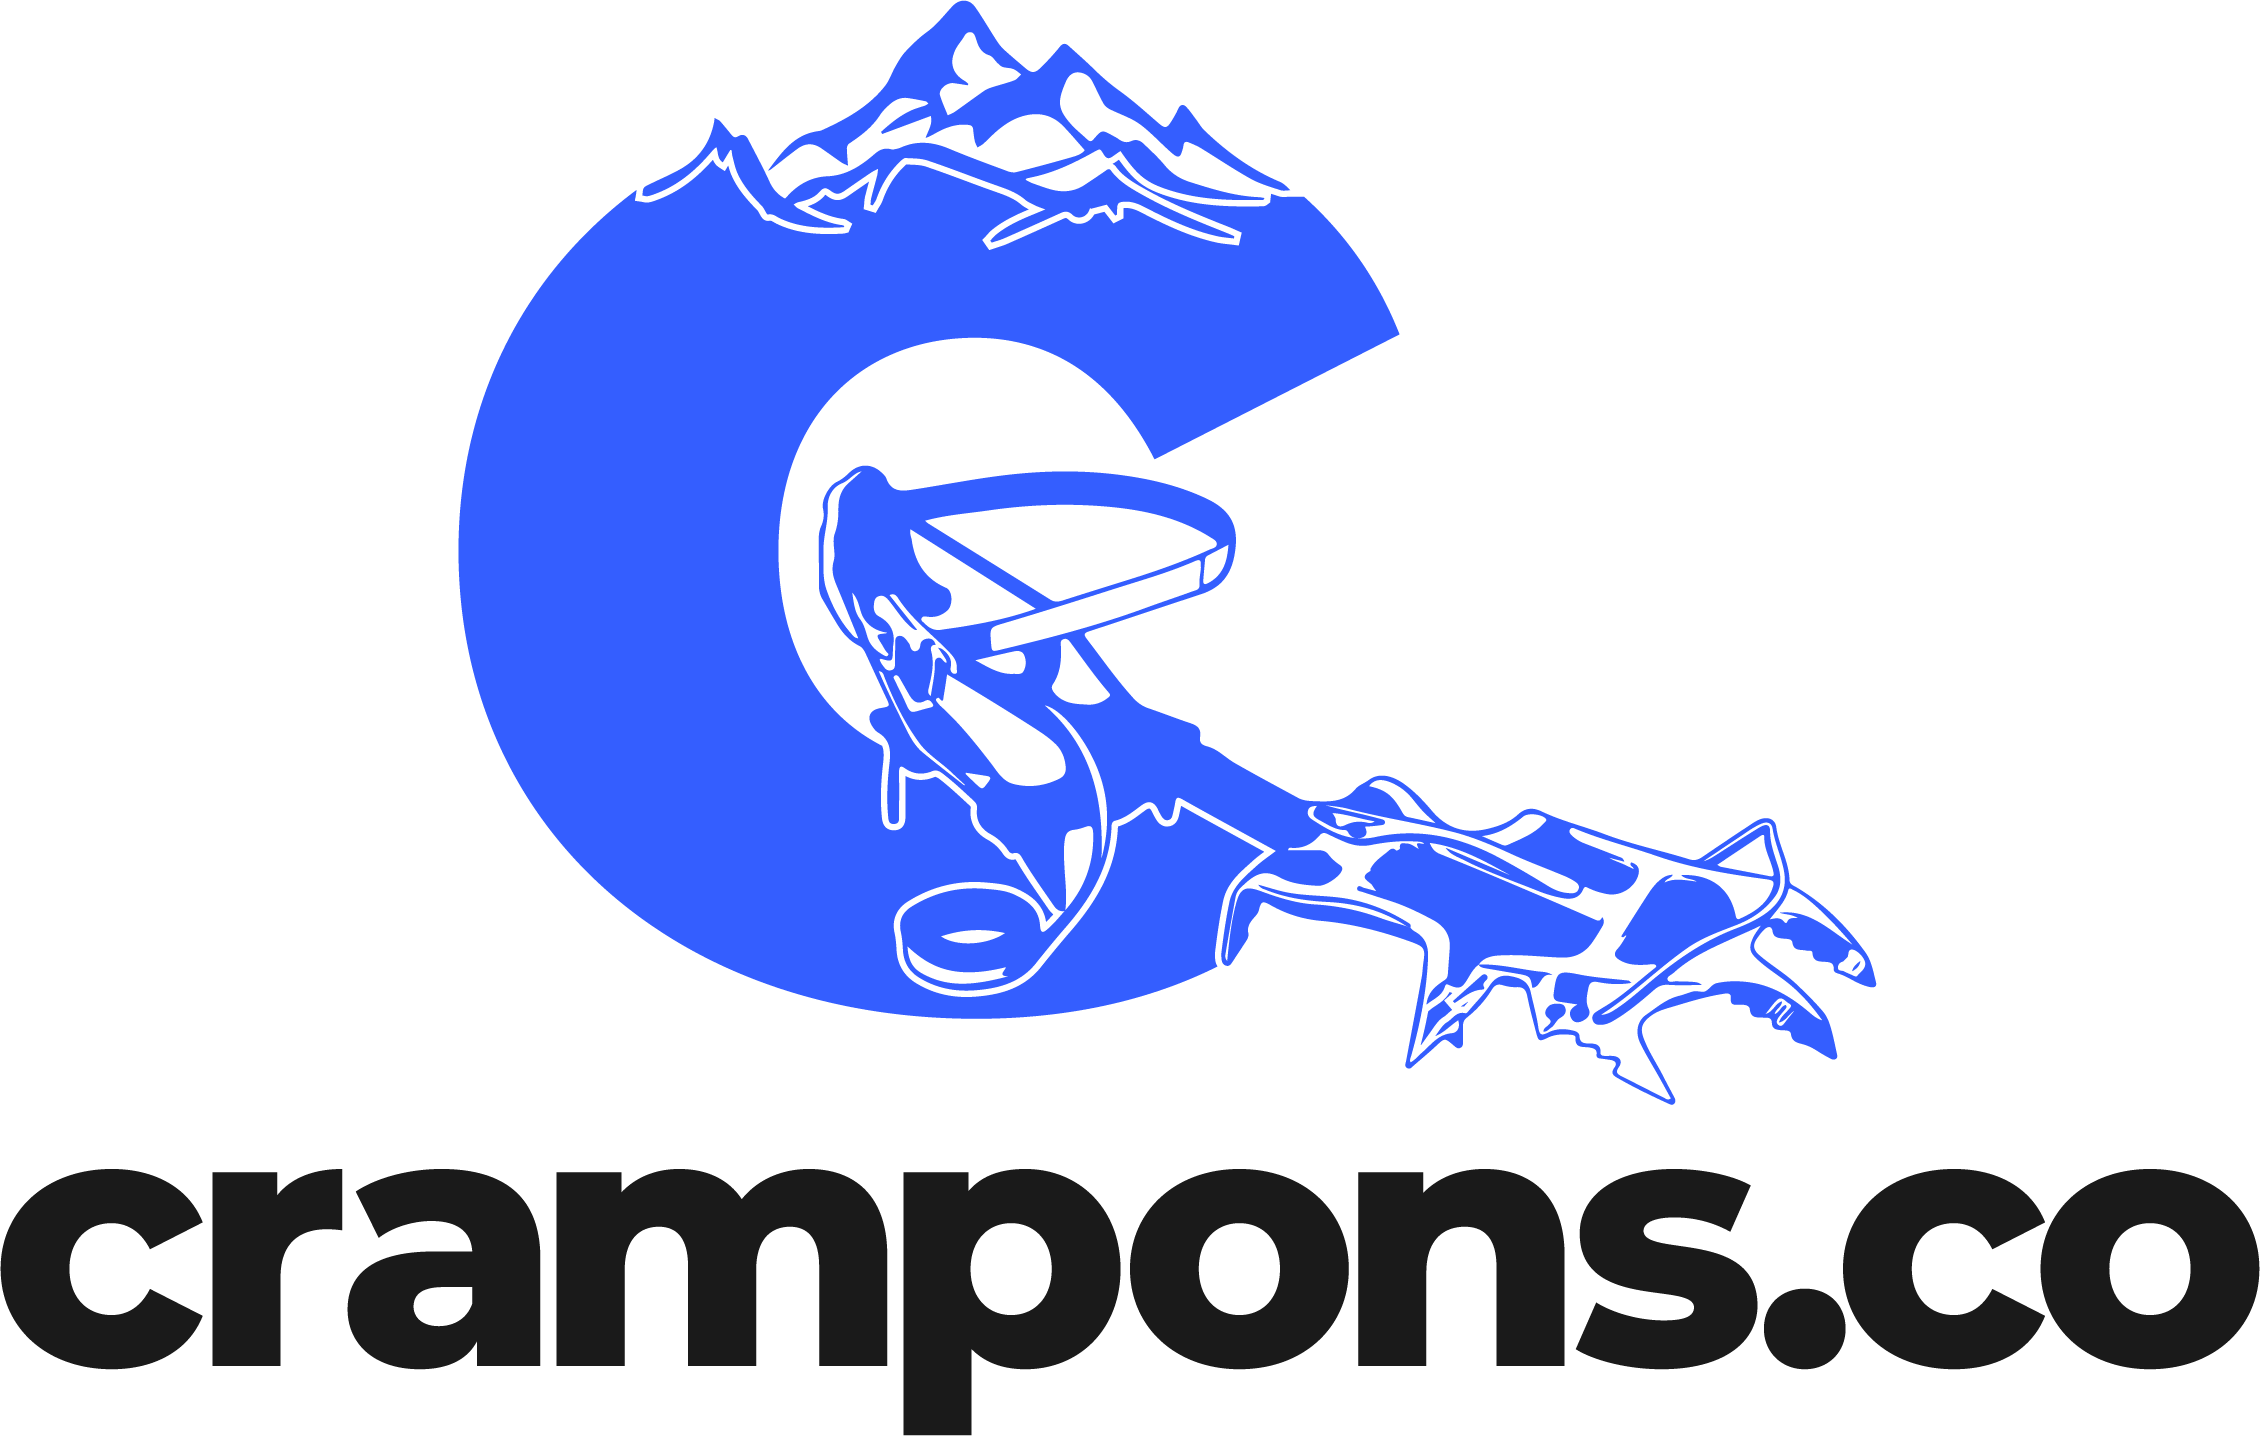 Crampons.co